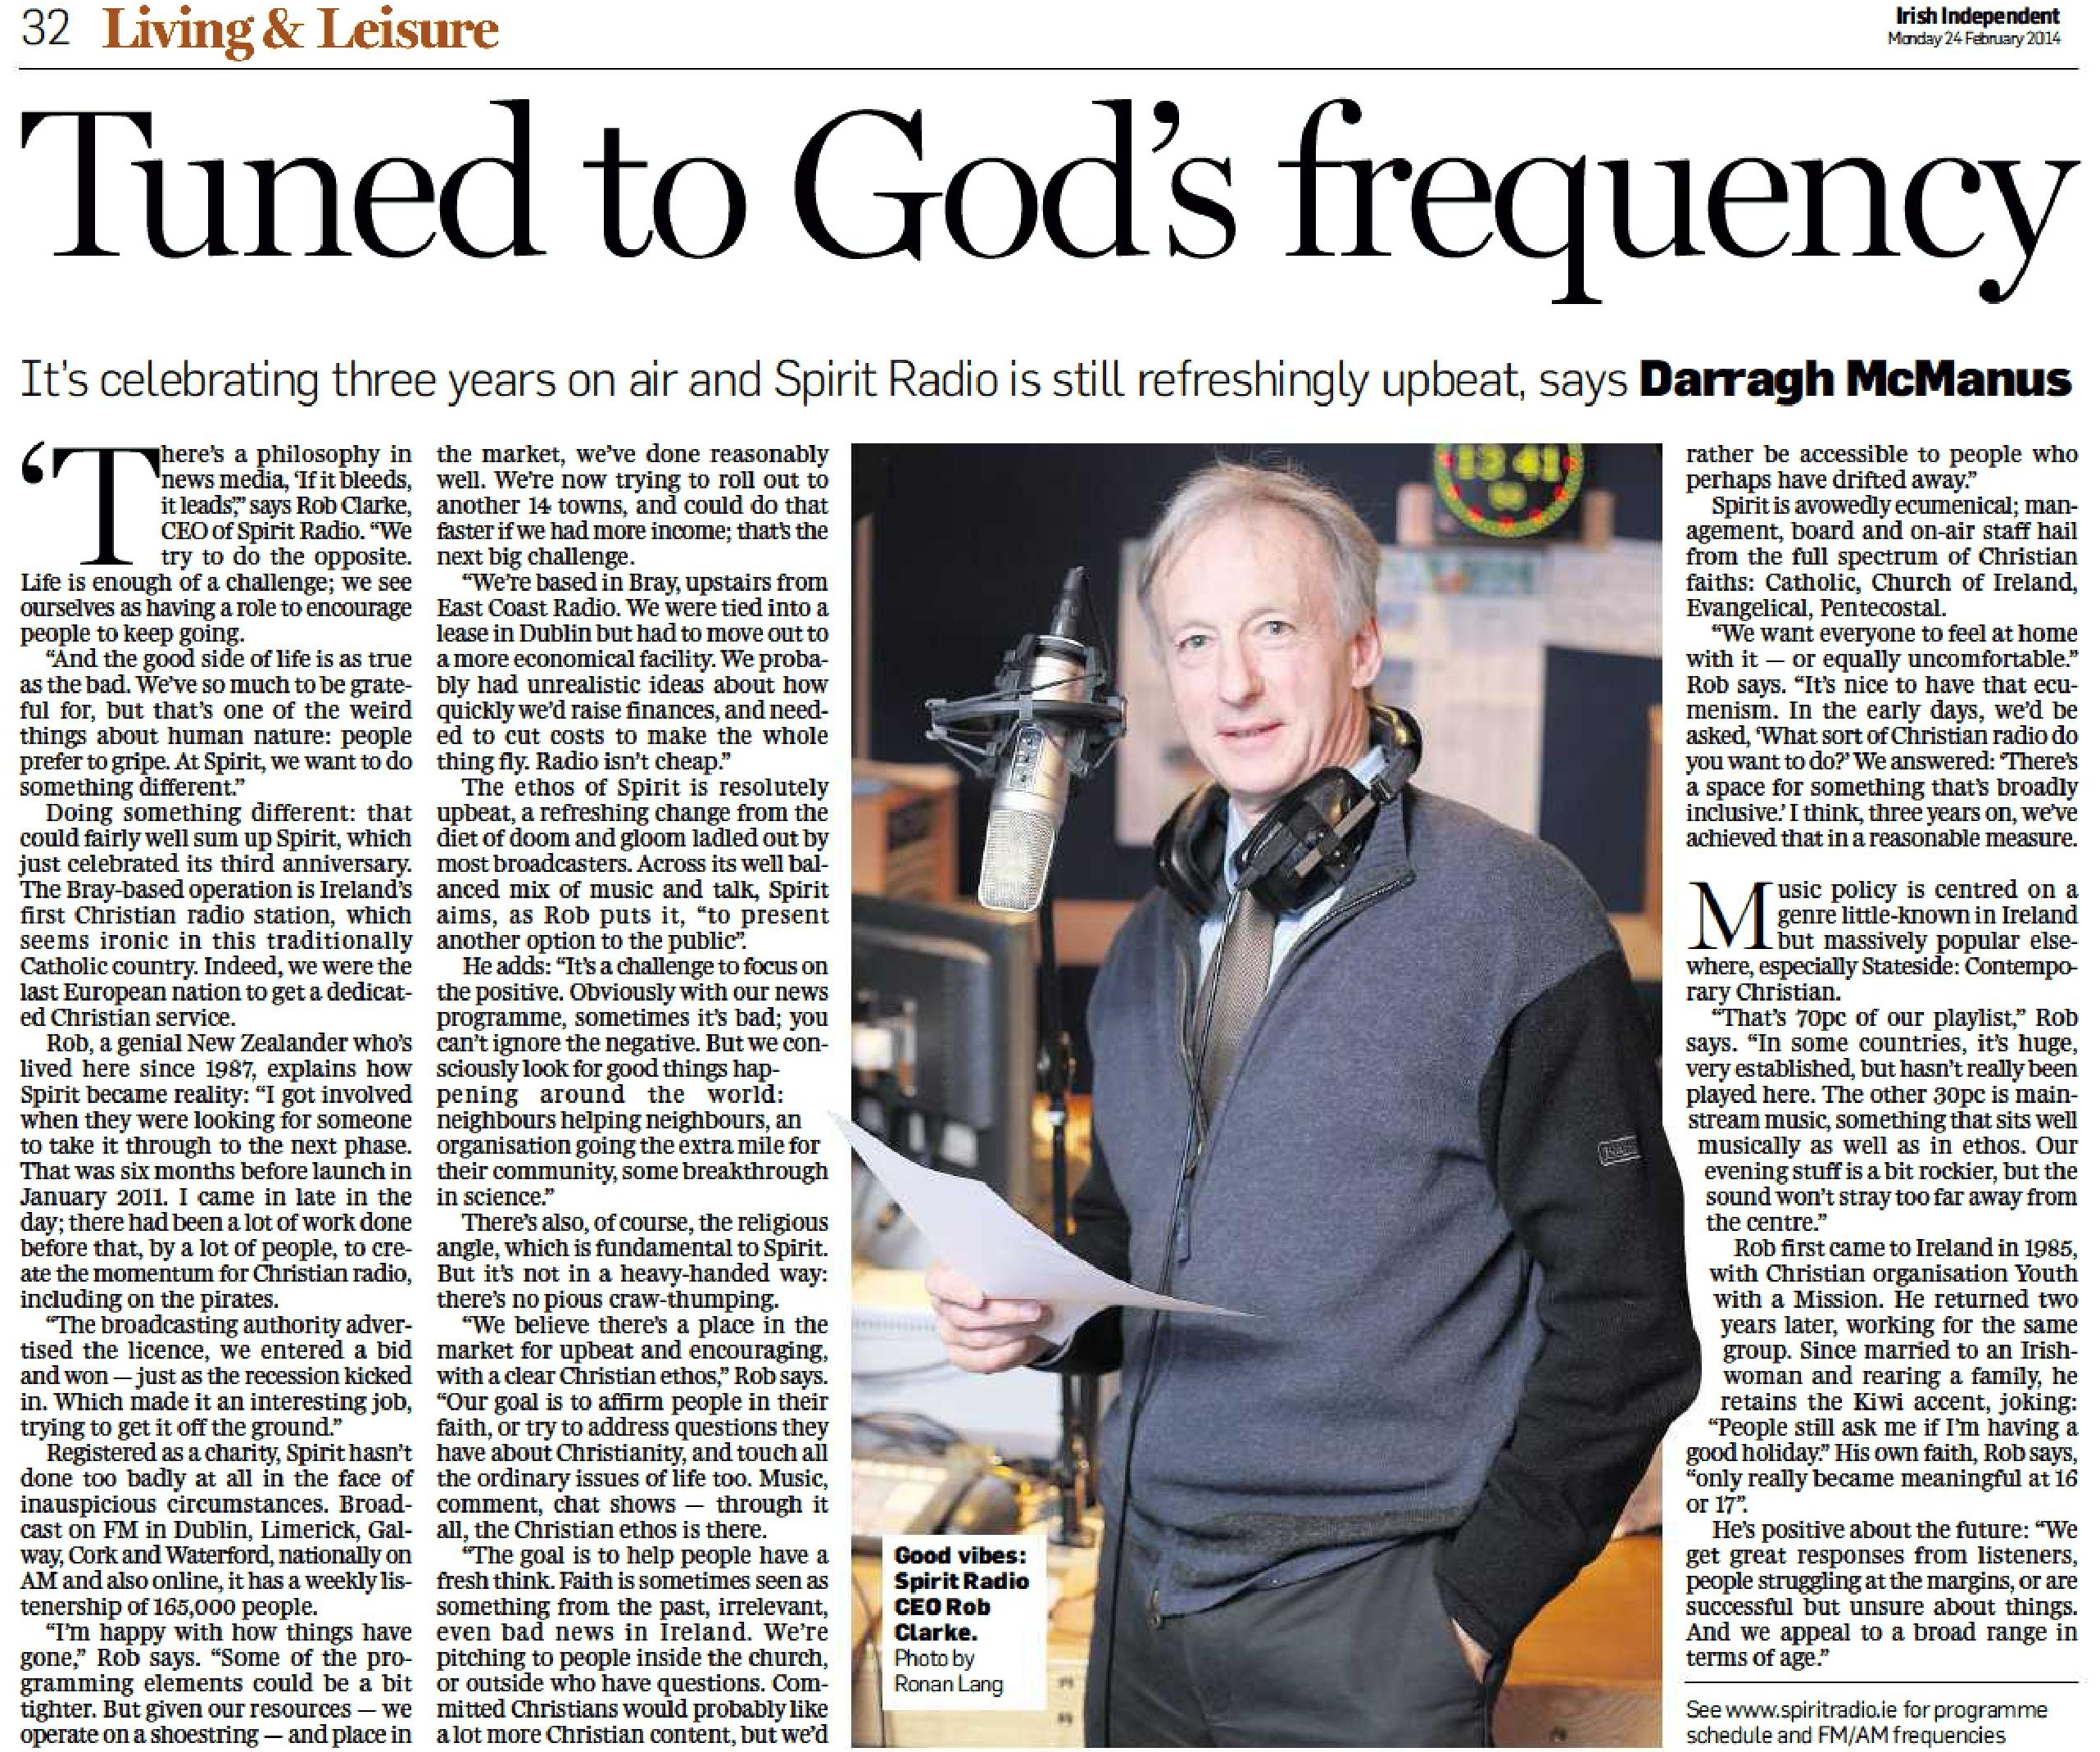 Tuned to God's frequency was a headline from The Irish Independent dated February 24th 2014